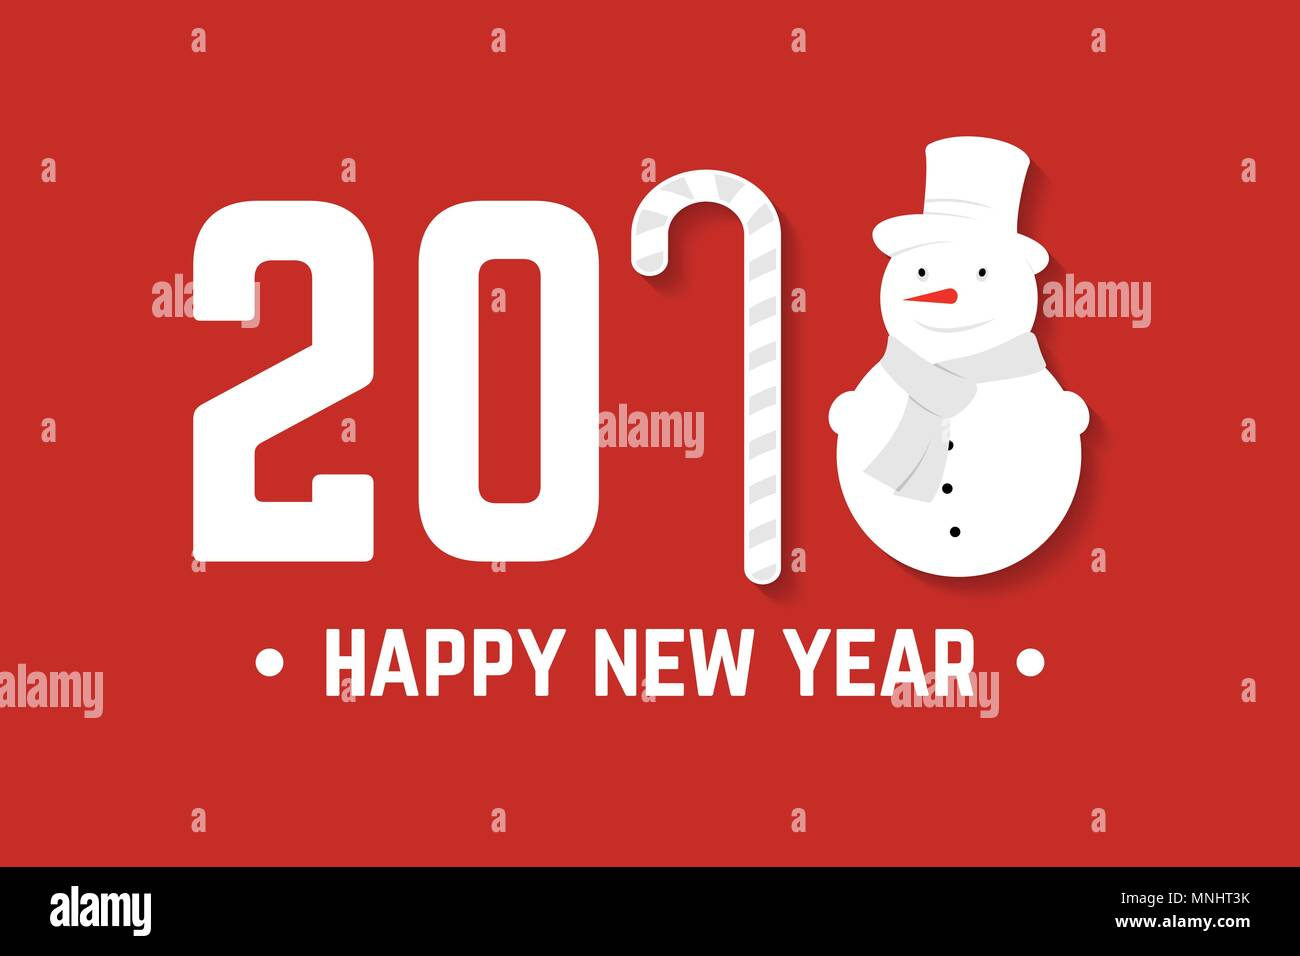 happy new year greeting card vector illustration 2018 design for